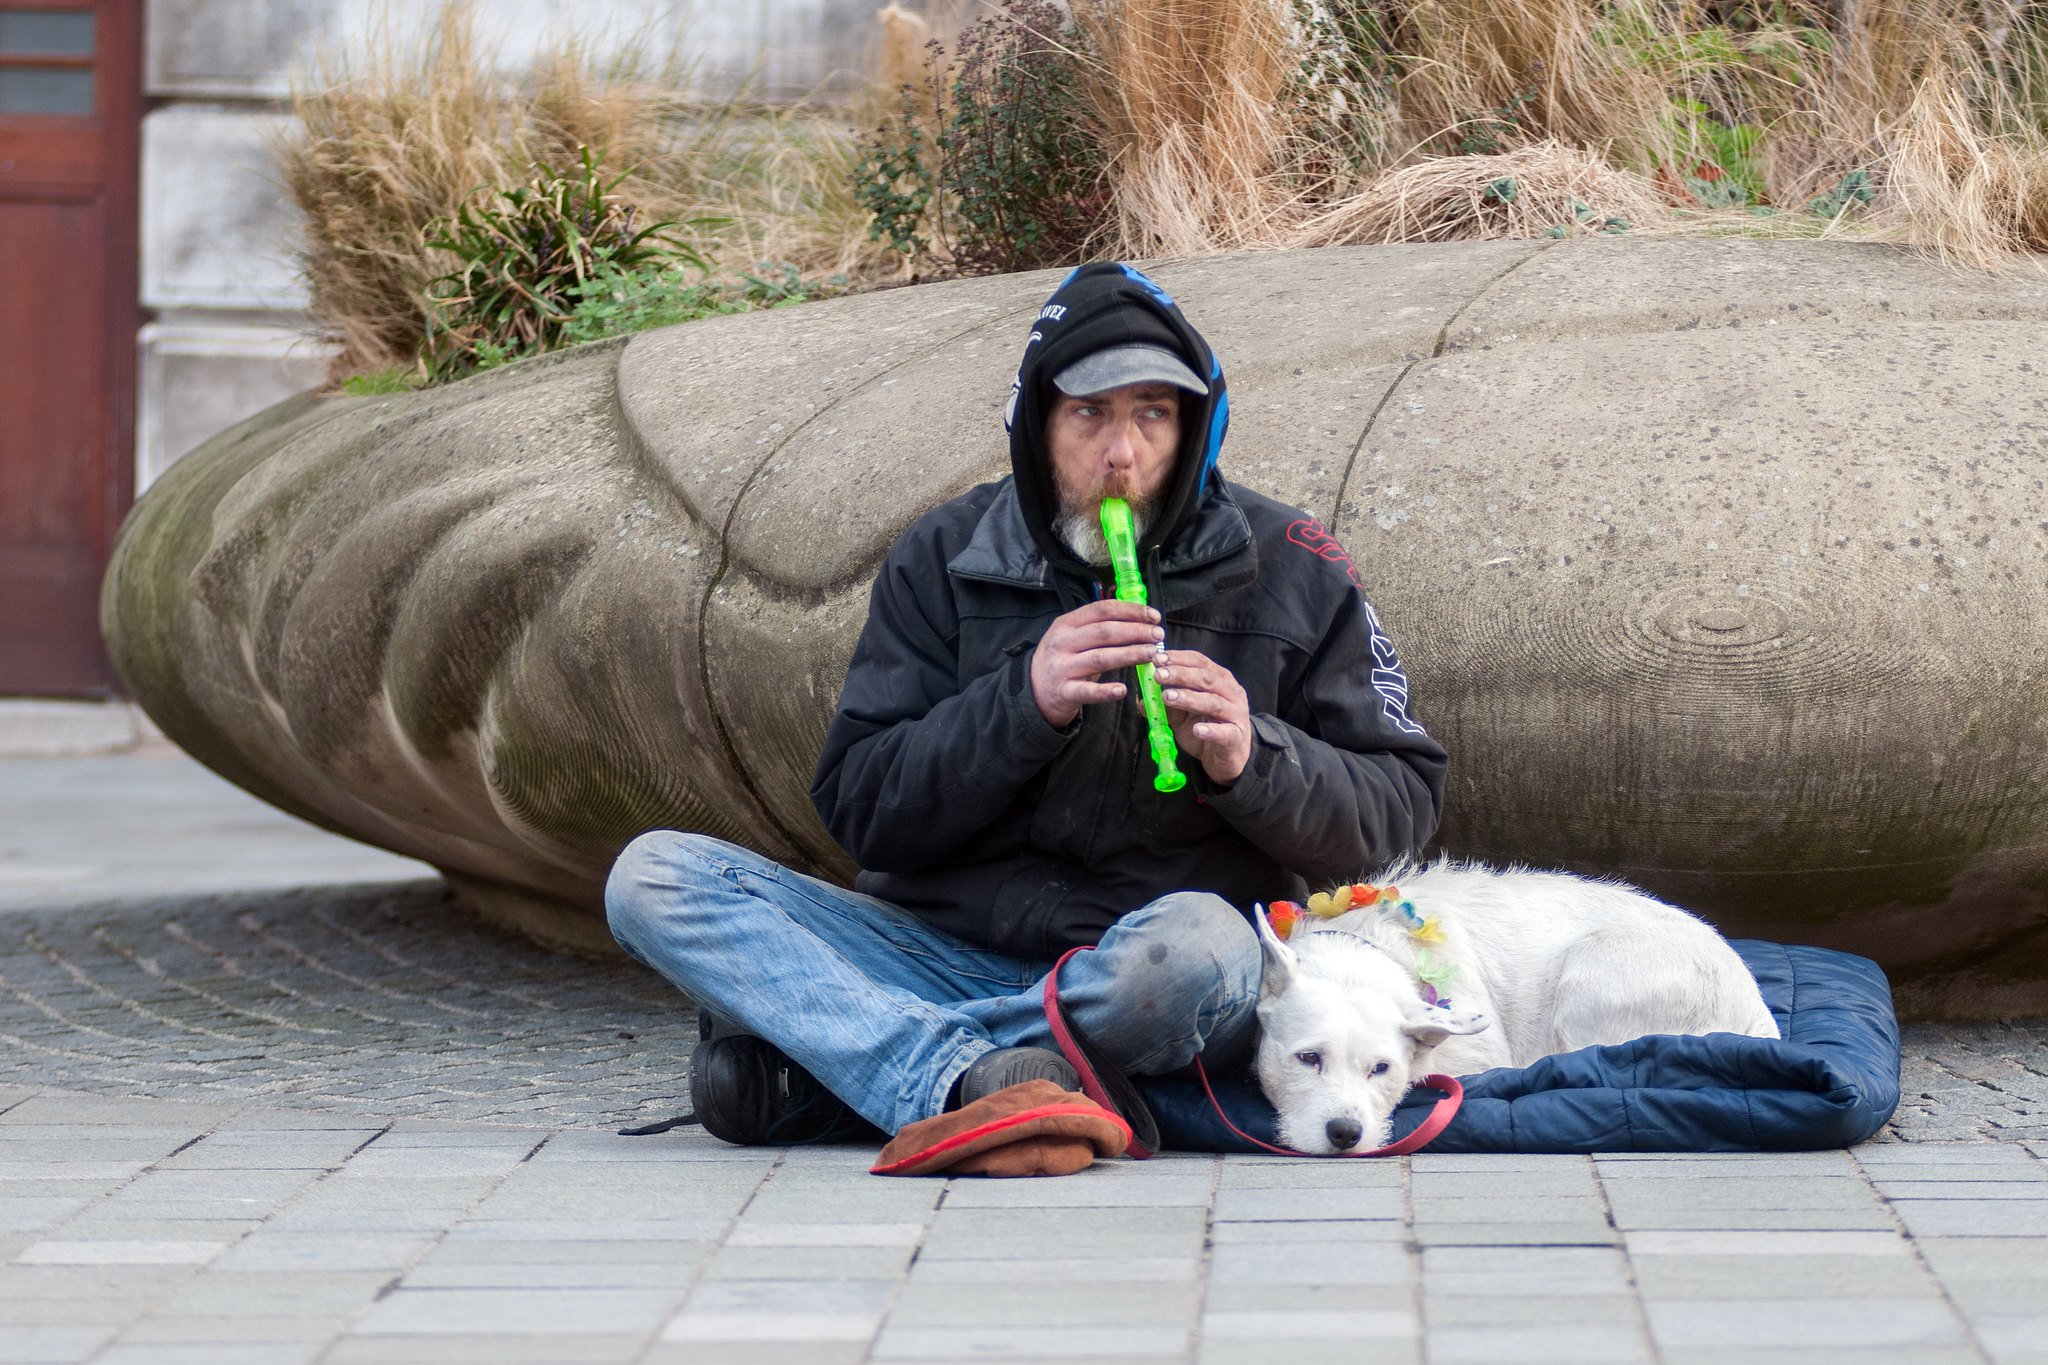 A man sitting on the ground playing a recorder-like instrument, with a dog curled up beside him.